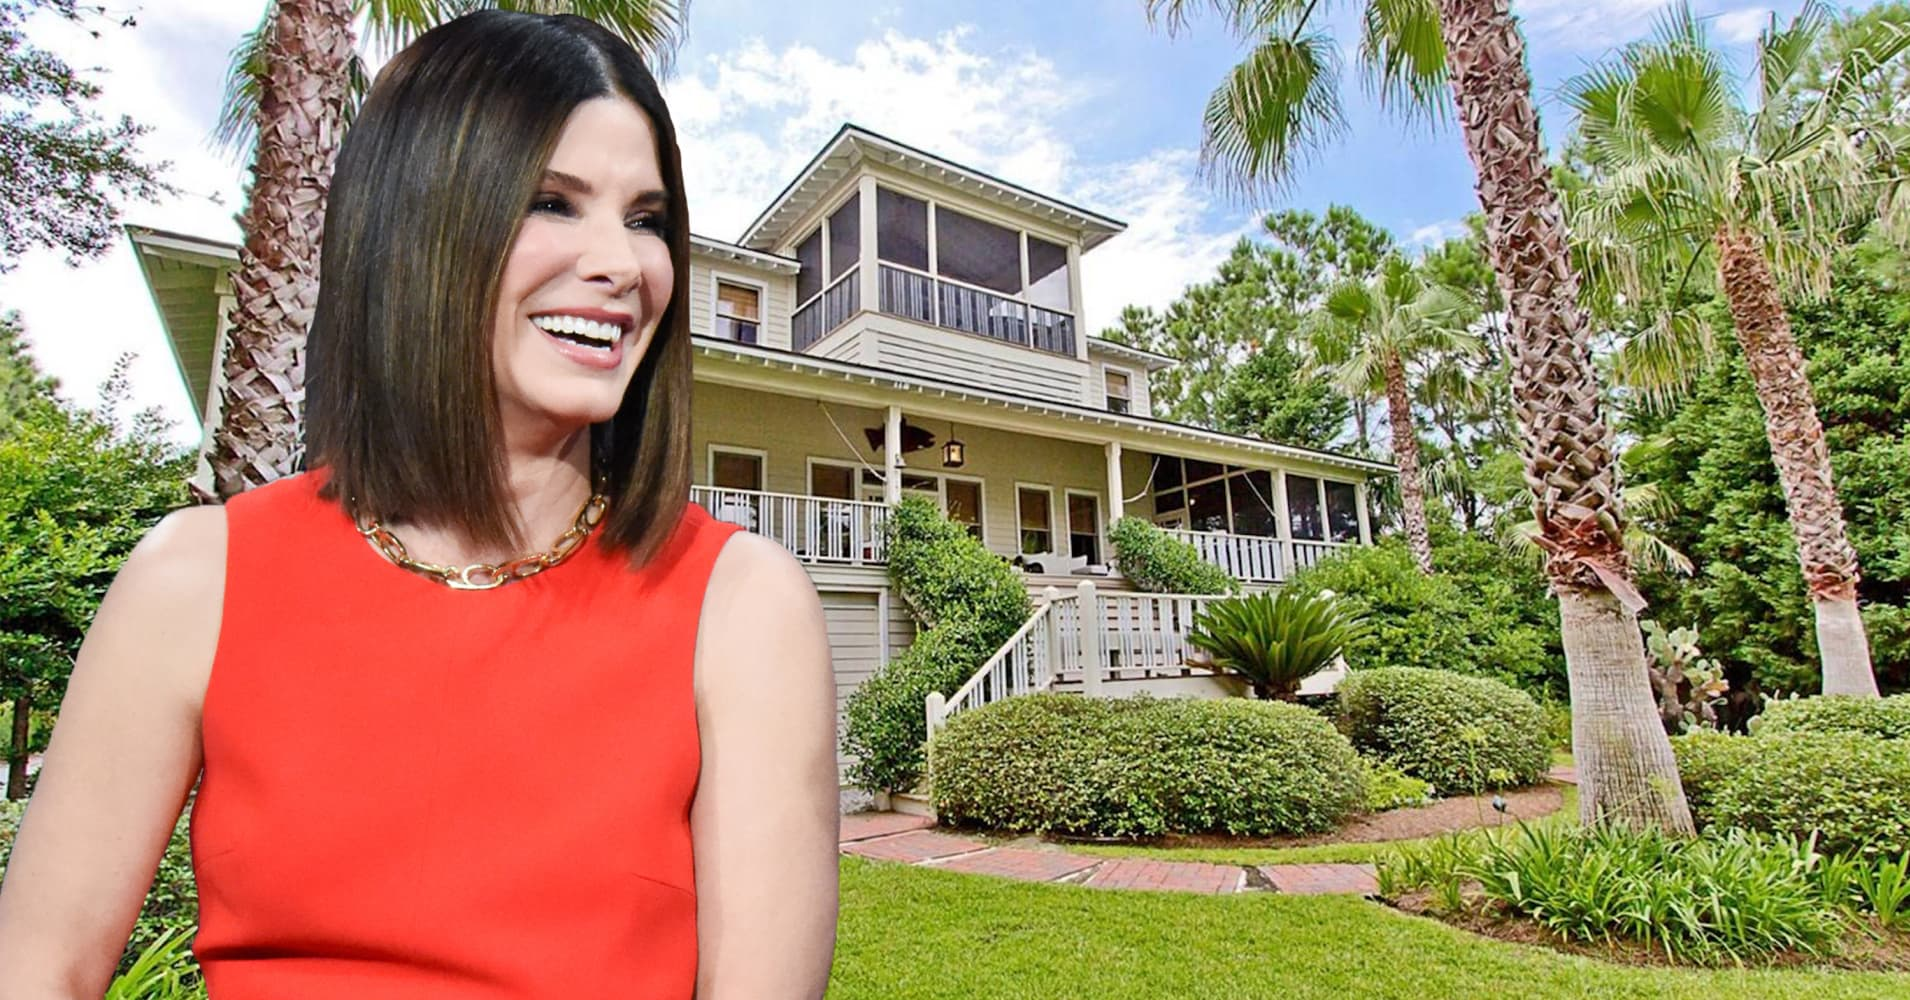 Photos: Sandra Bullock's Georgia beach house for sale